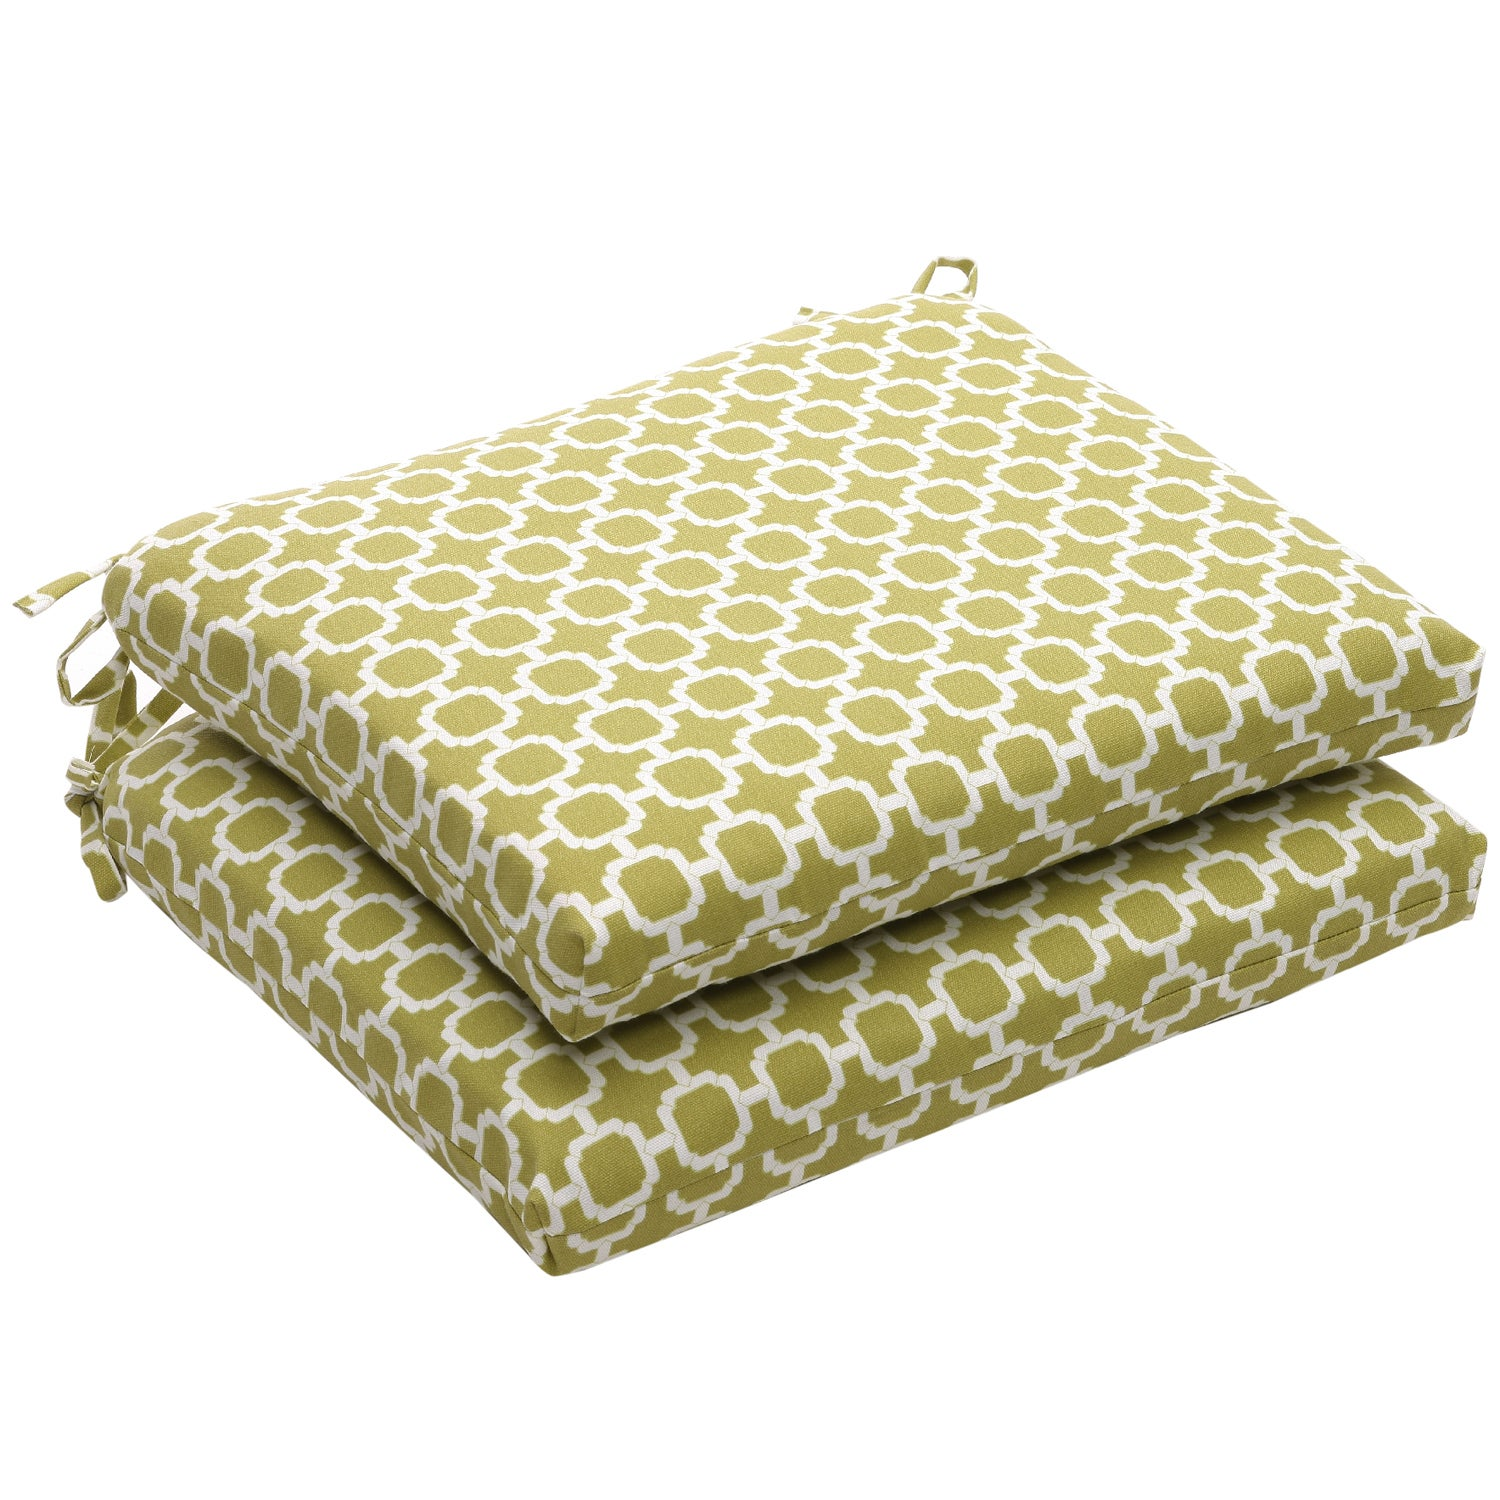 Outdoor Green and White Geometric Square Seat Cushions